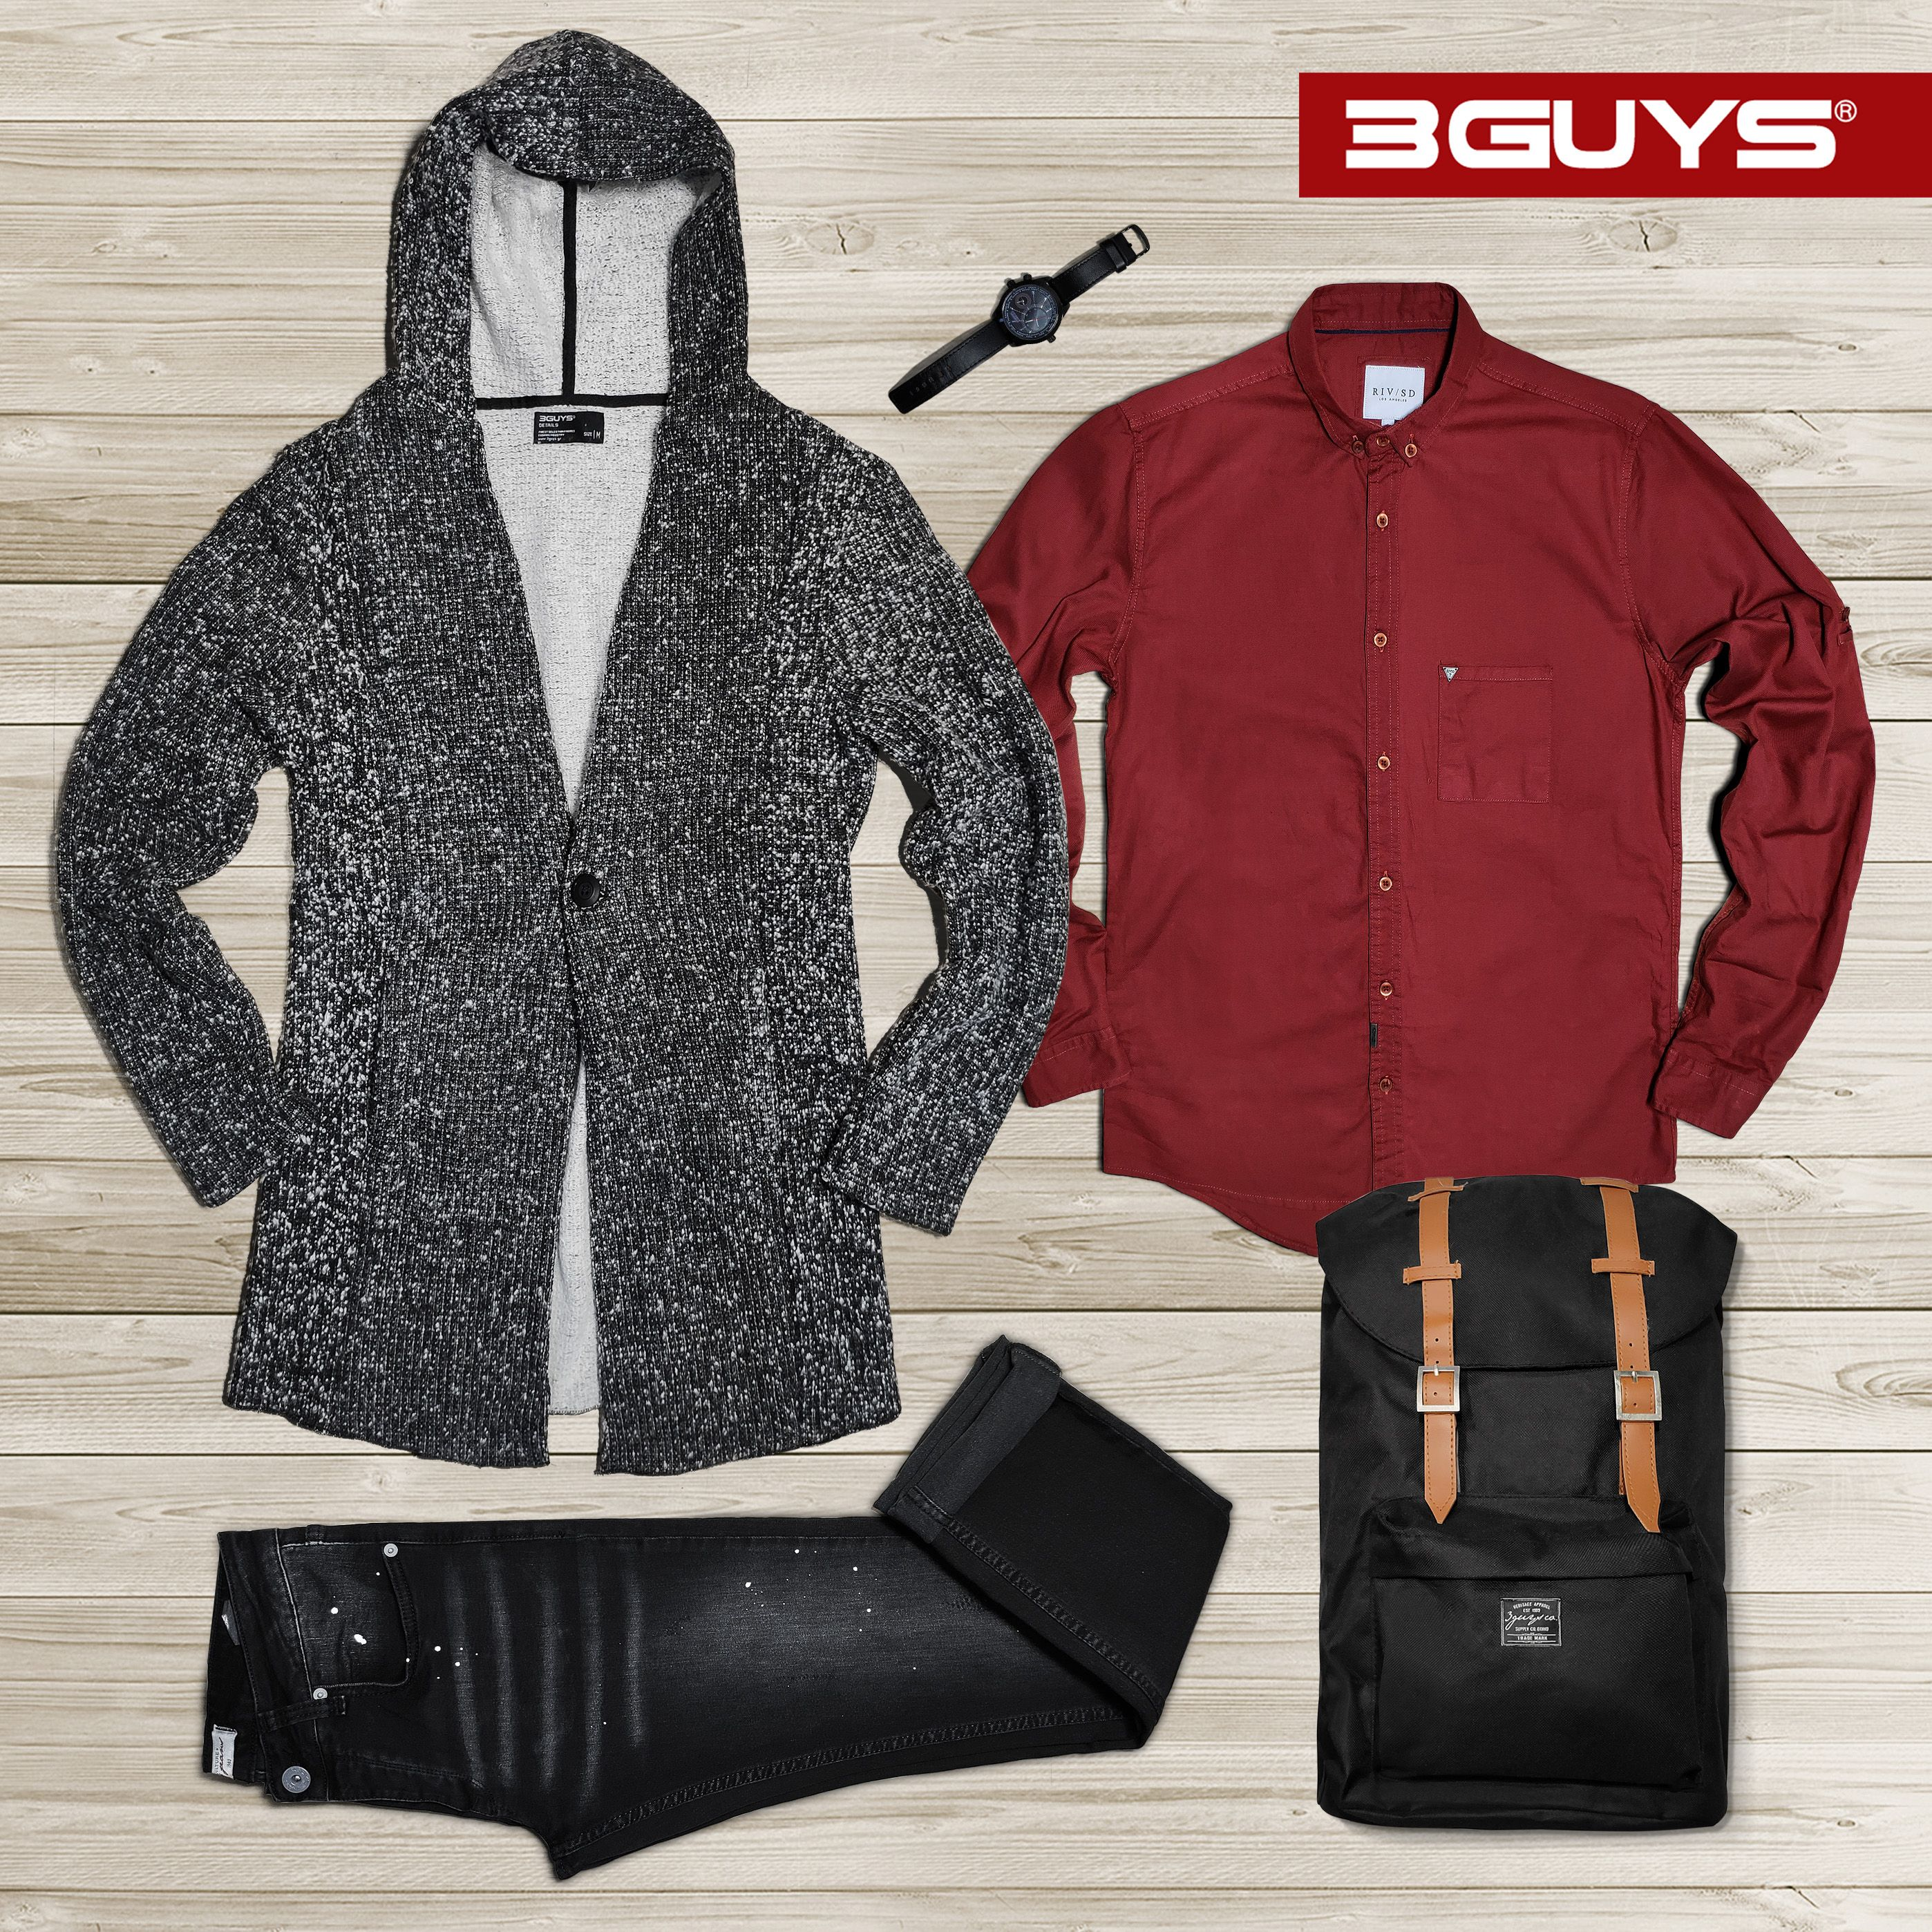 6fa610c5d7d 3GUYS | Fall/Winter 2018-19 Total Look | 3GUYS Outfits | Παλτό ...